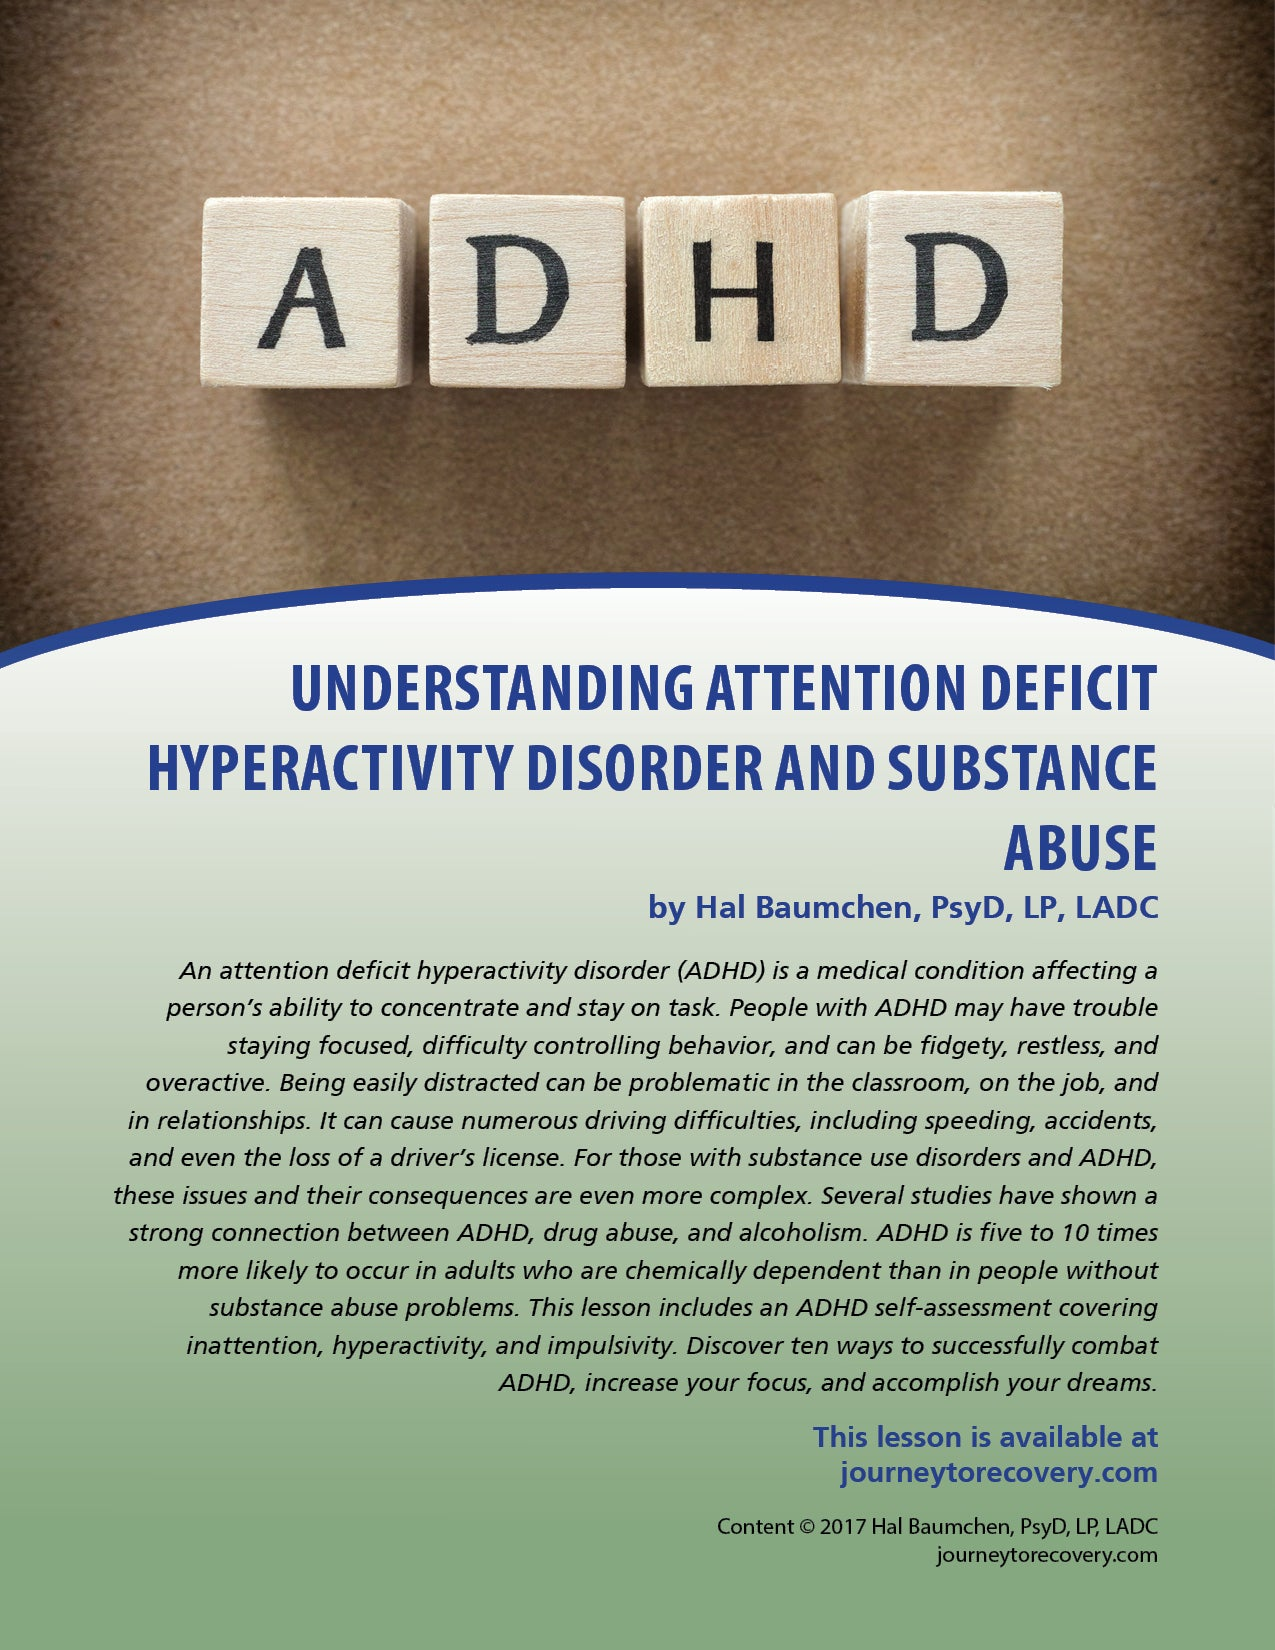 Understanding Attention Deficit Hyperactivity Disorder and Substance Abuse